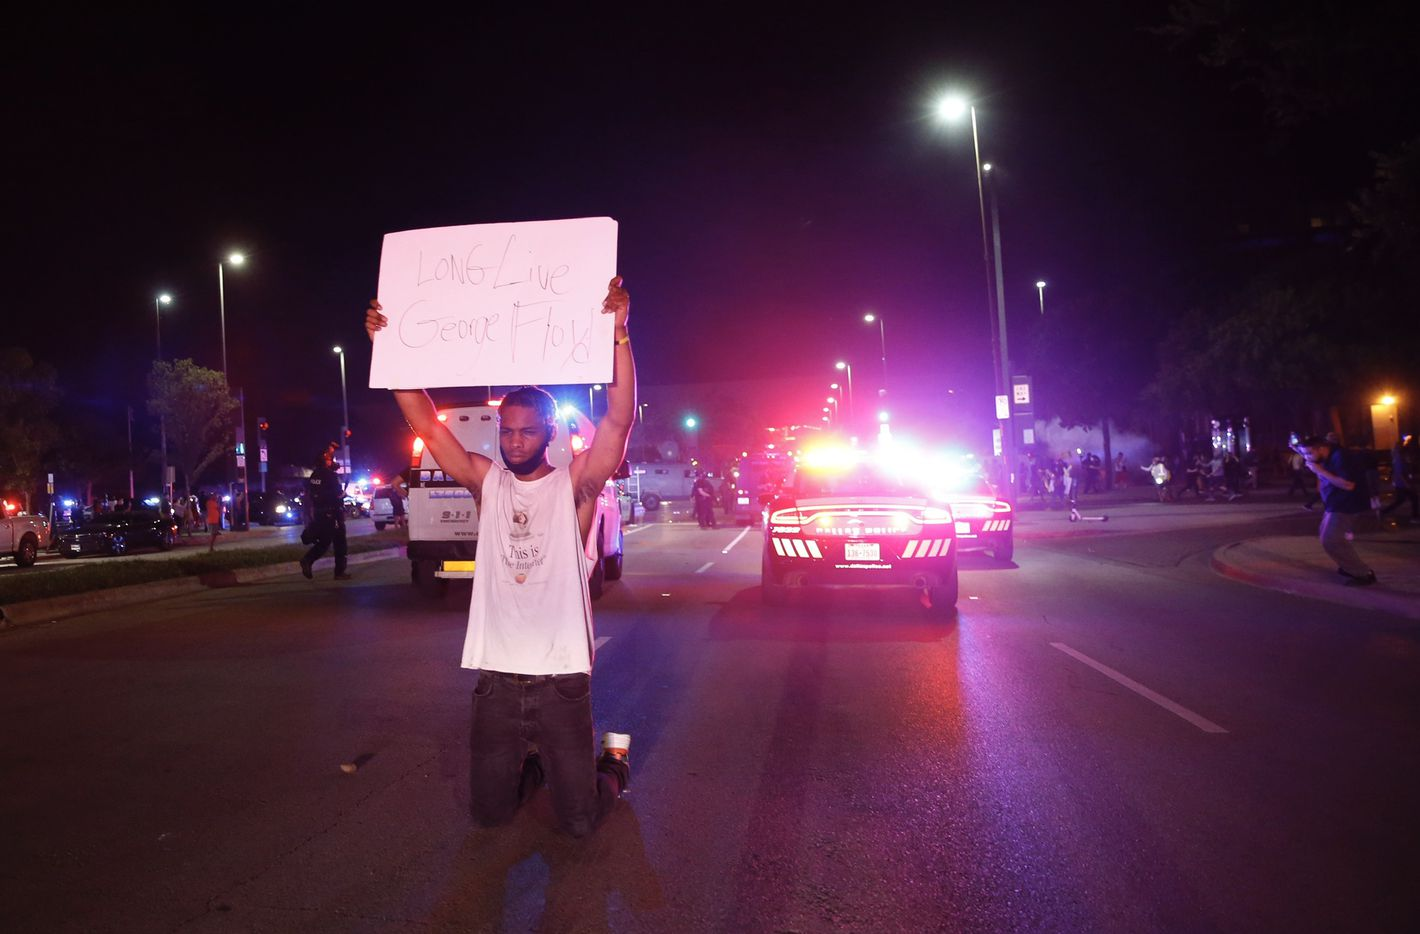 Jordan Spotser Of Dallas holds up a sign as protesters rally during a demonstration against police brutality in downtown Dallas, on Friday, May 29, 2020.